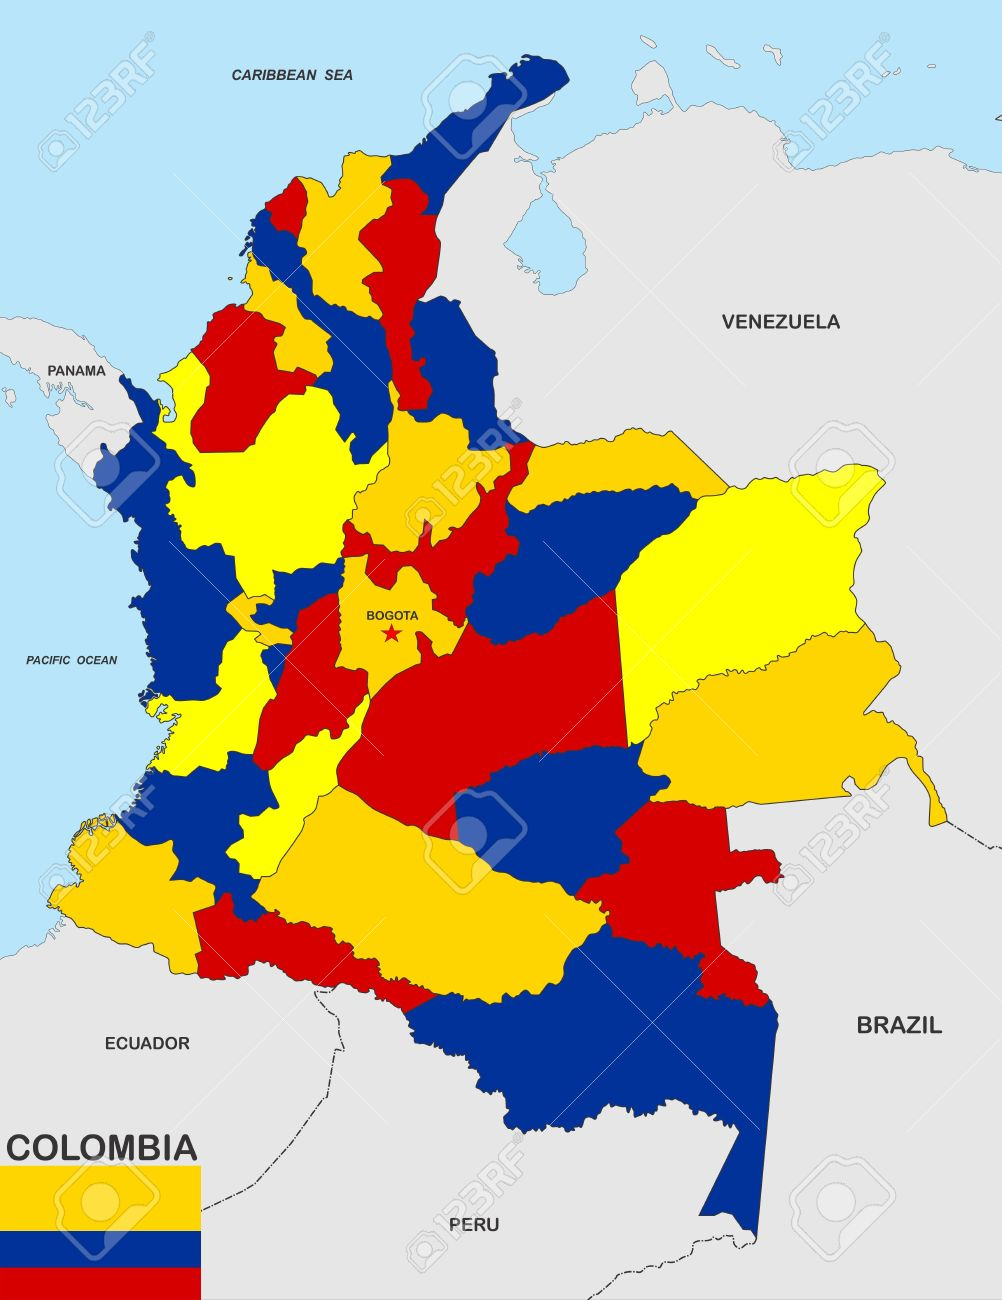 Very Big Size Colombia Political Map Illustration Stock Photo